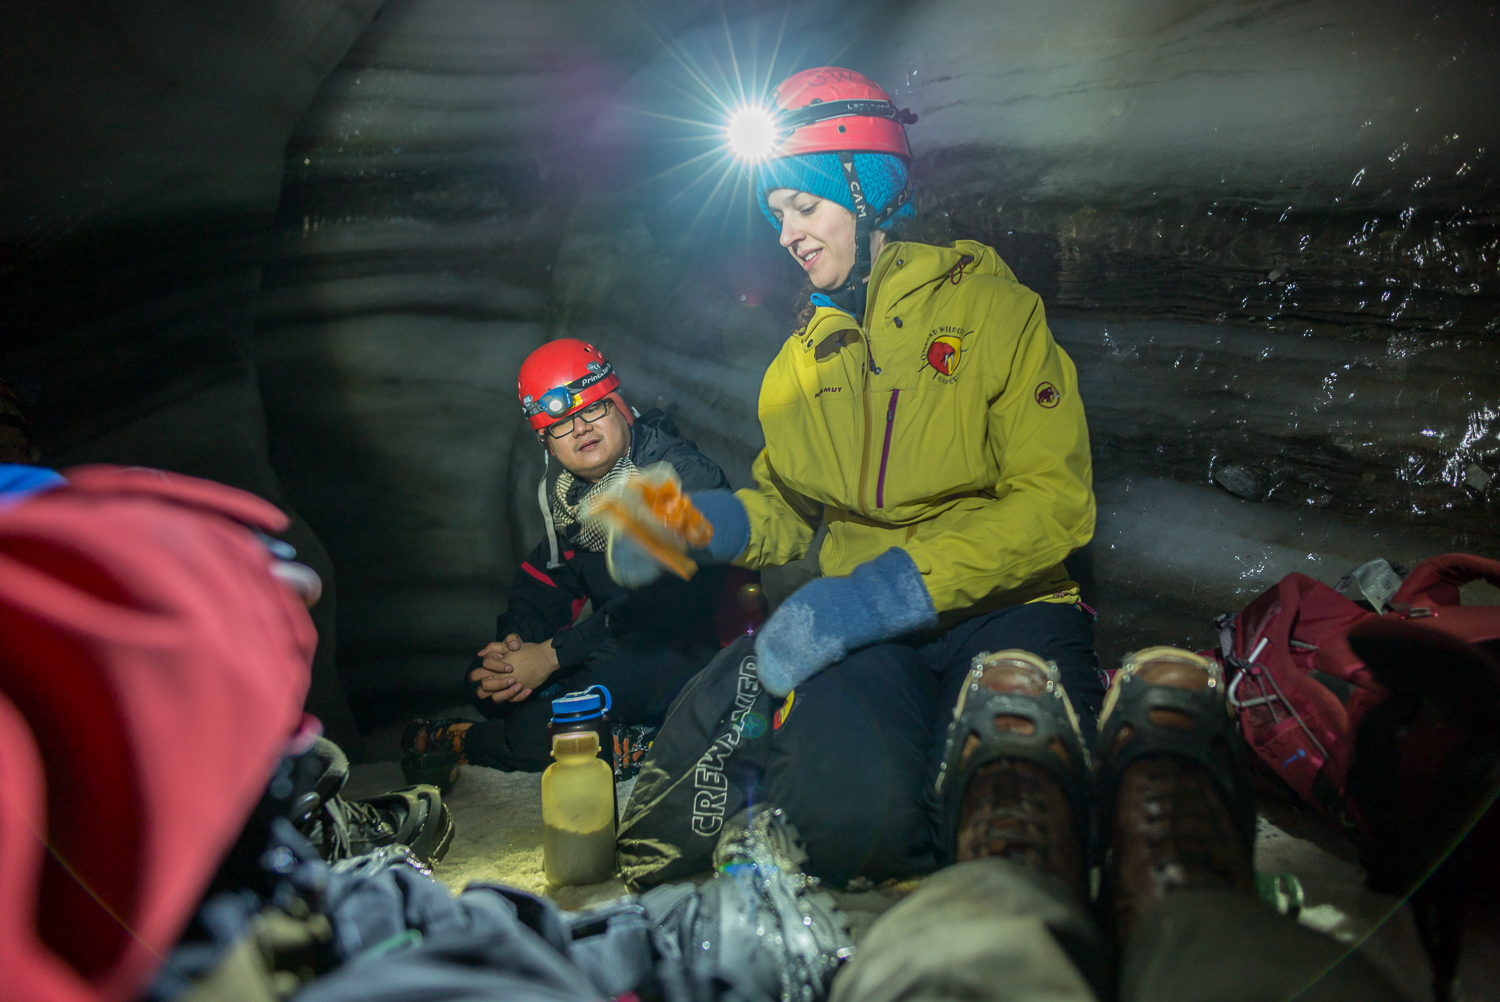 Lunch break in the ice cave